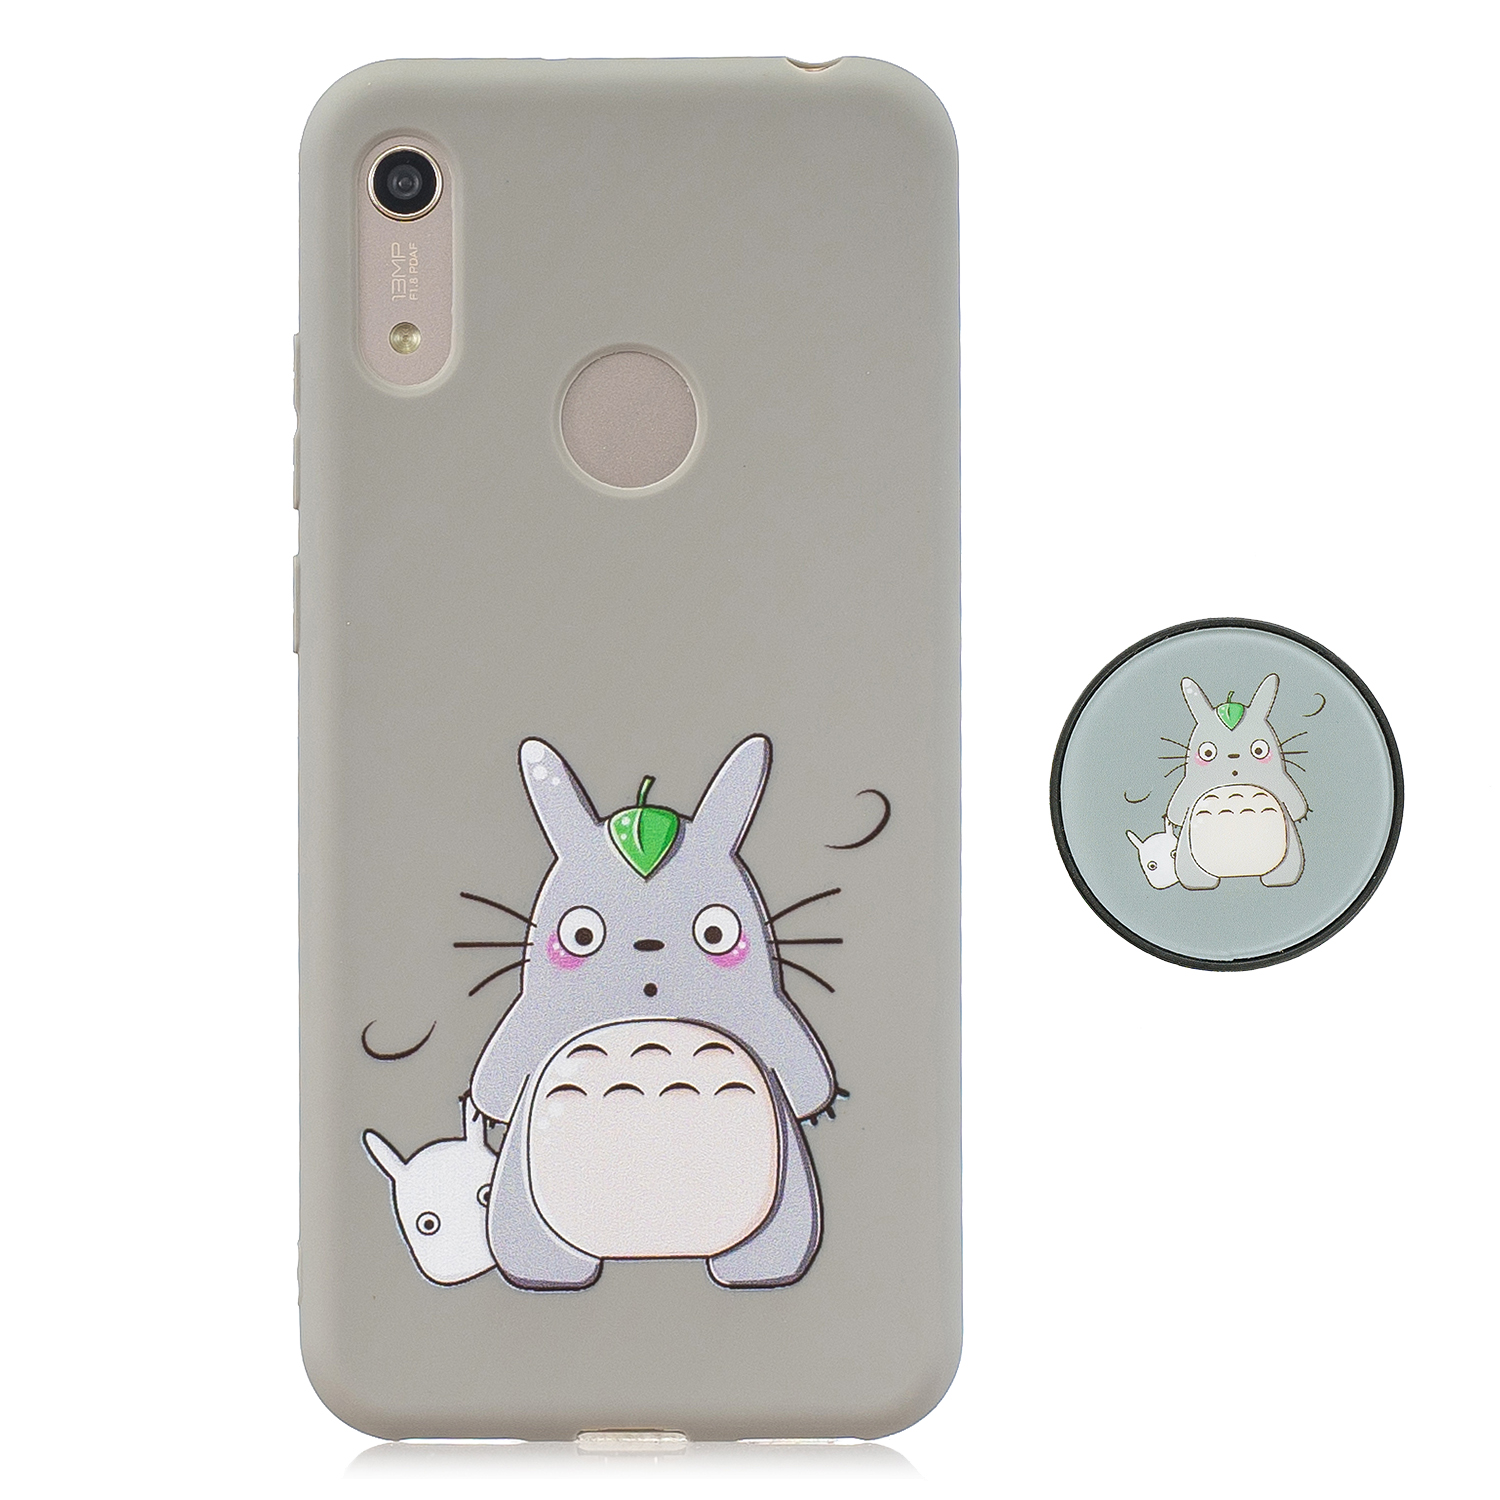 For HUAWEI Y6 2019 Flexible Stand Holder Case Soft TPU Full Cover Case Phone Cover Cute Phone Case 4